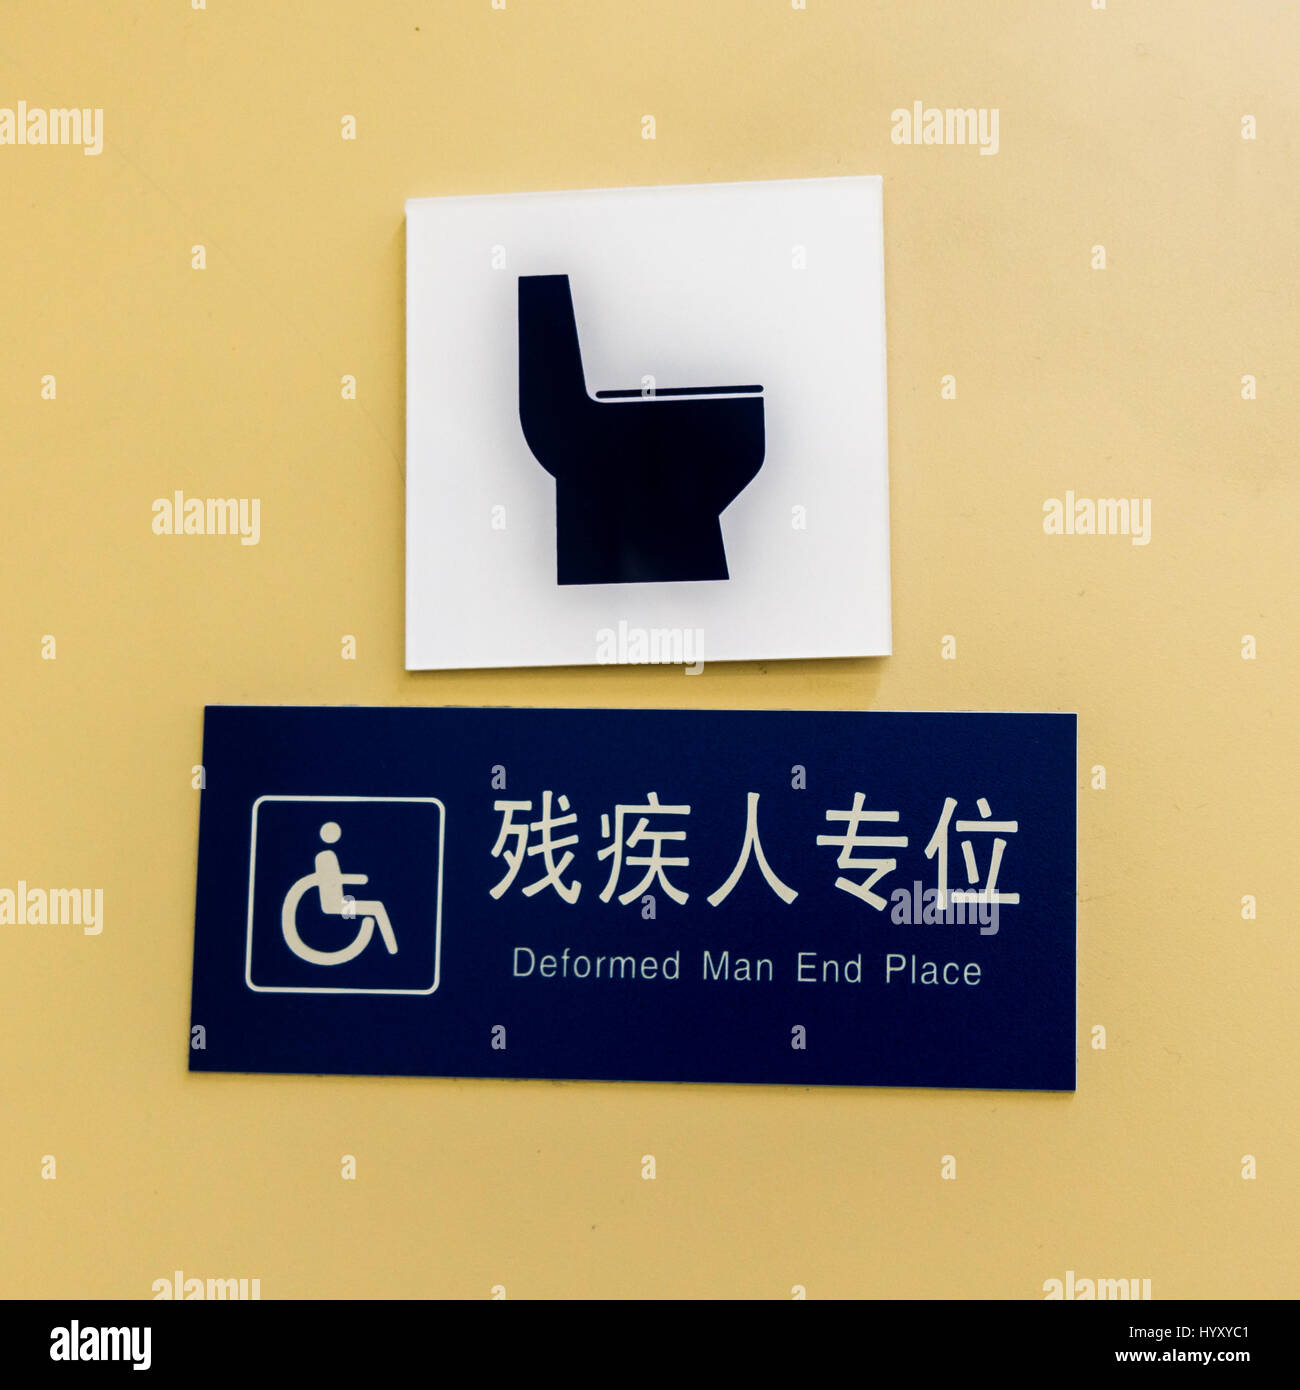 Chinese disabled toilet sign poorly translated into English, Xi'an, China - Stock Image